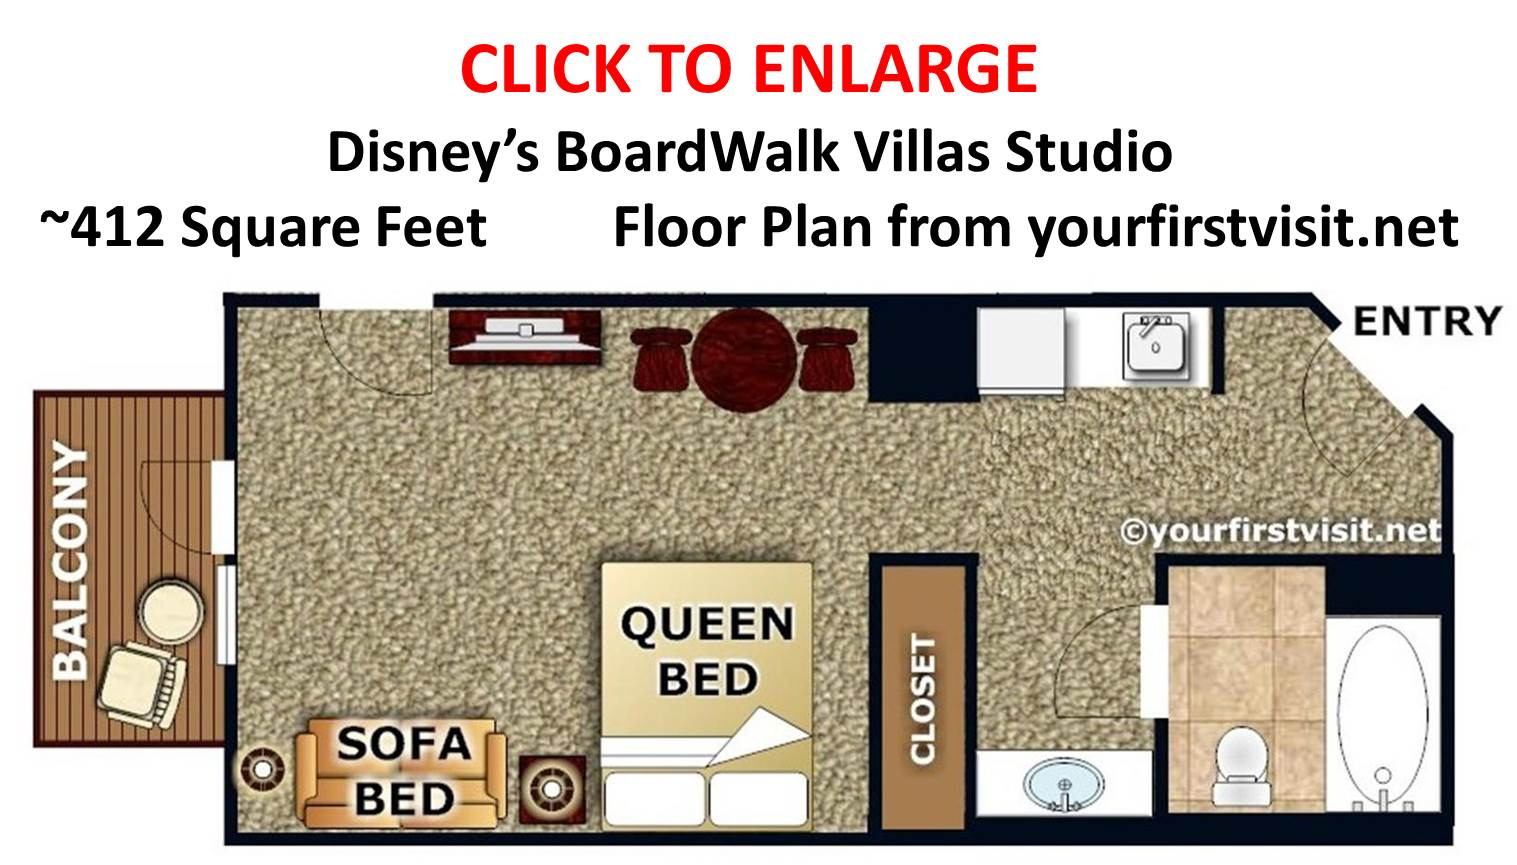 Bay Lake Tower Studio Floor Plan: Sleeping Space Options And Bed Types At Walt Disney World